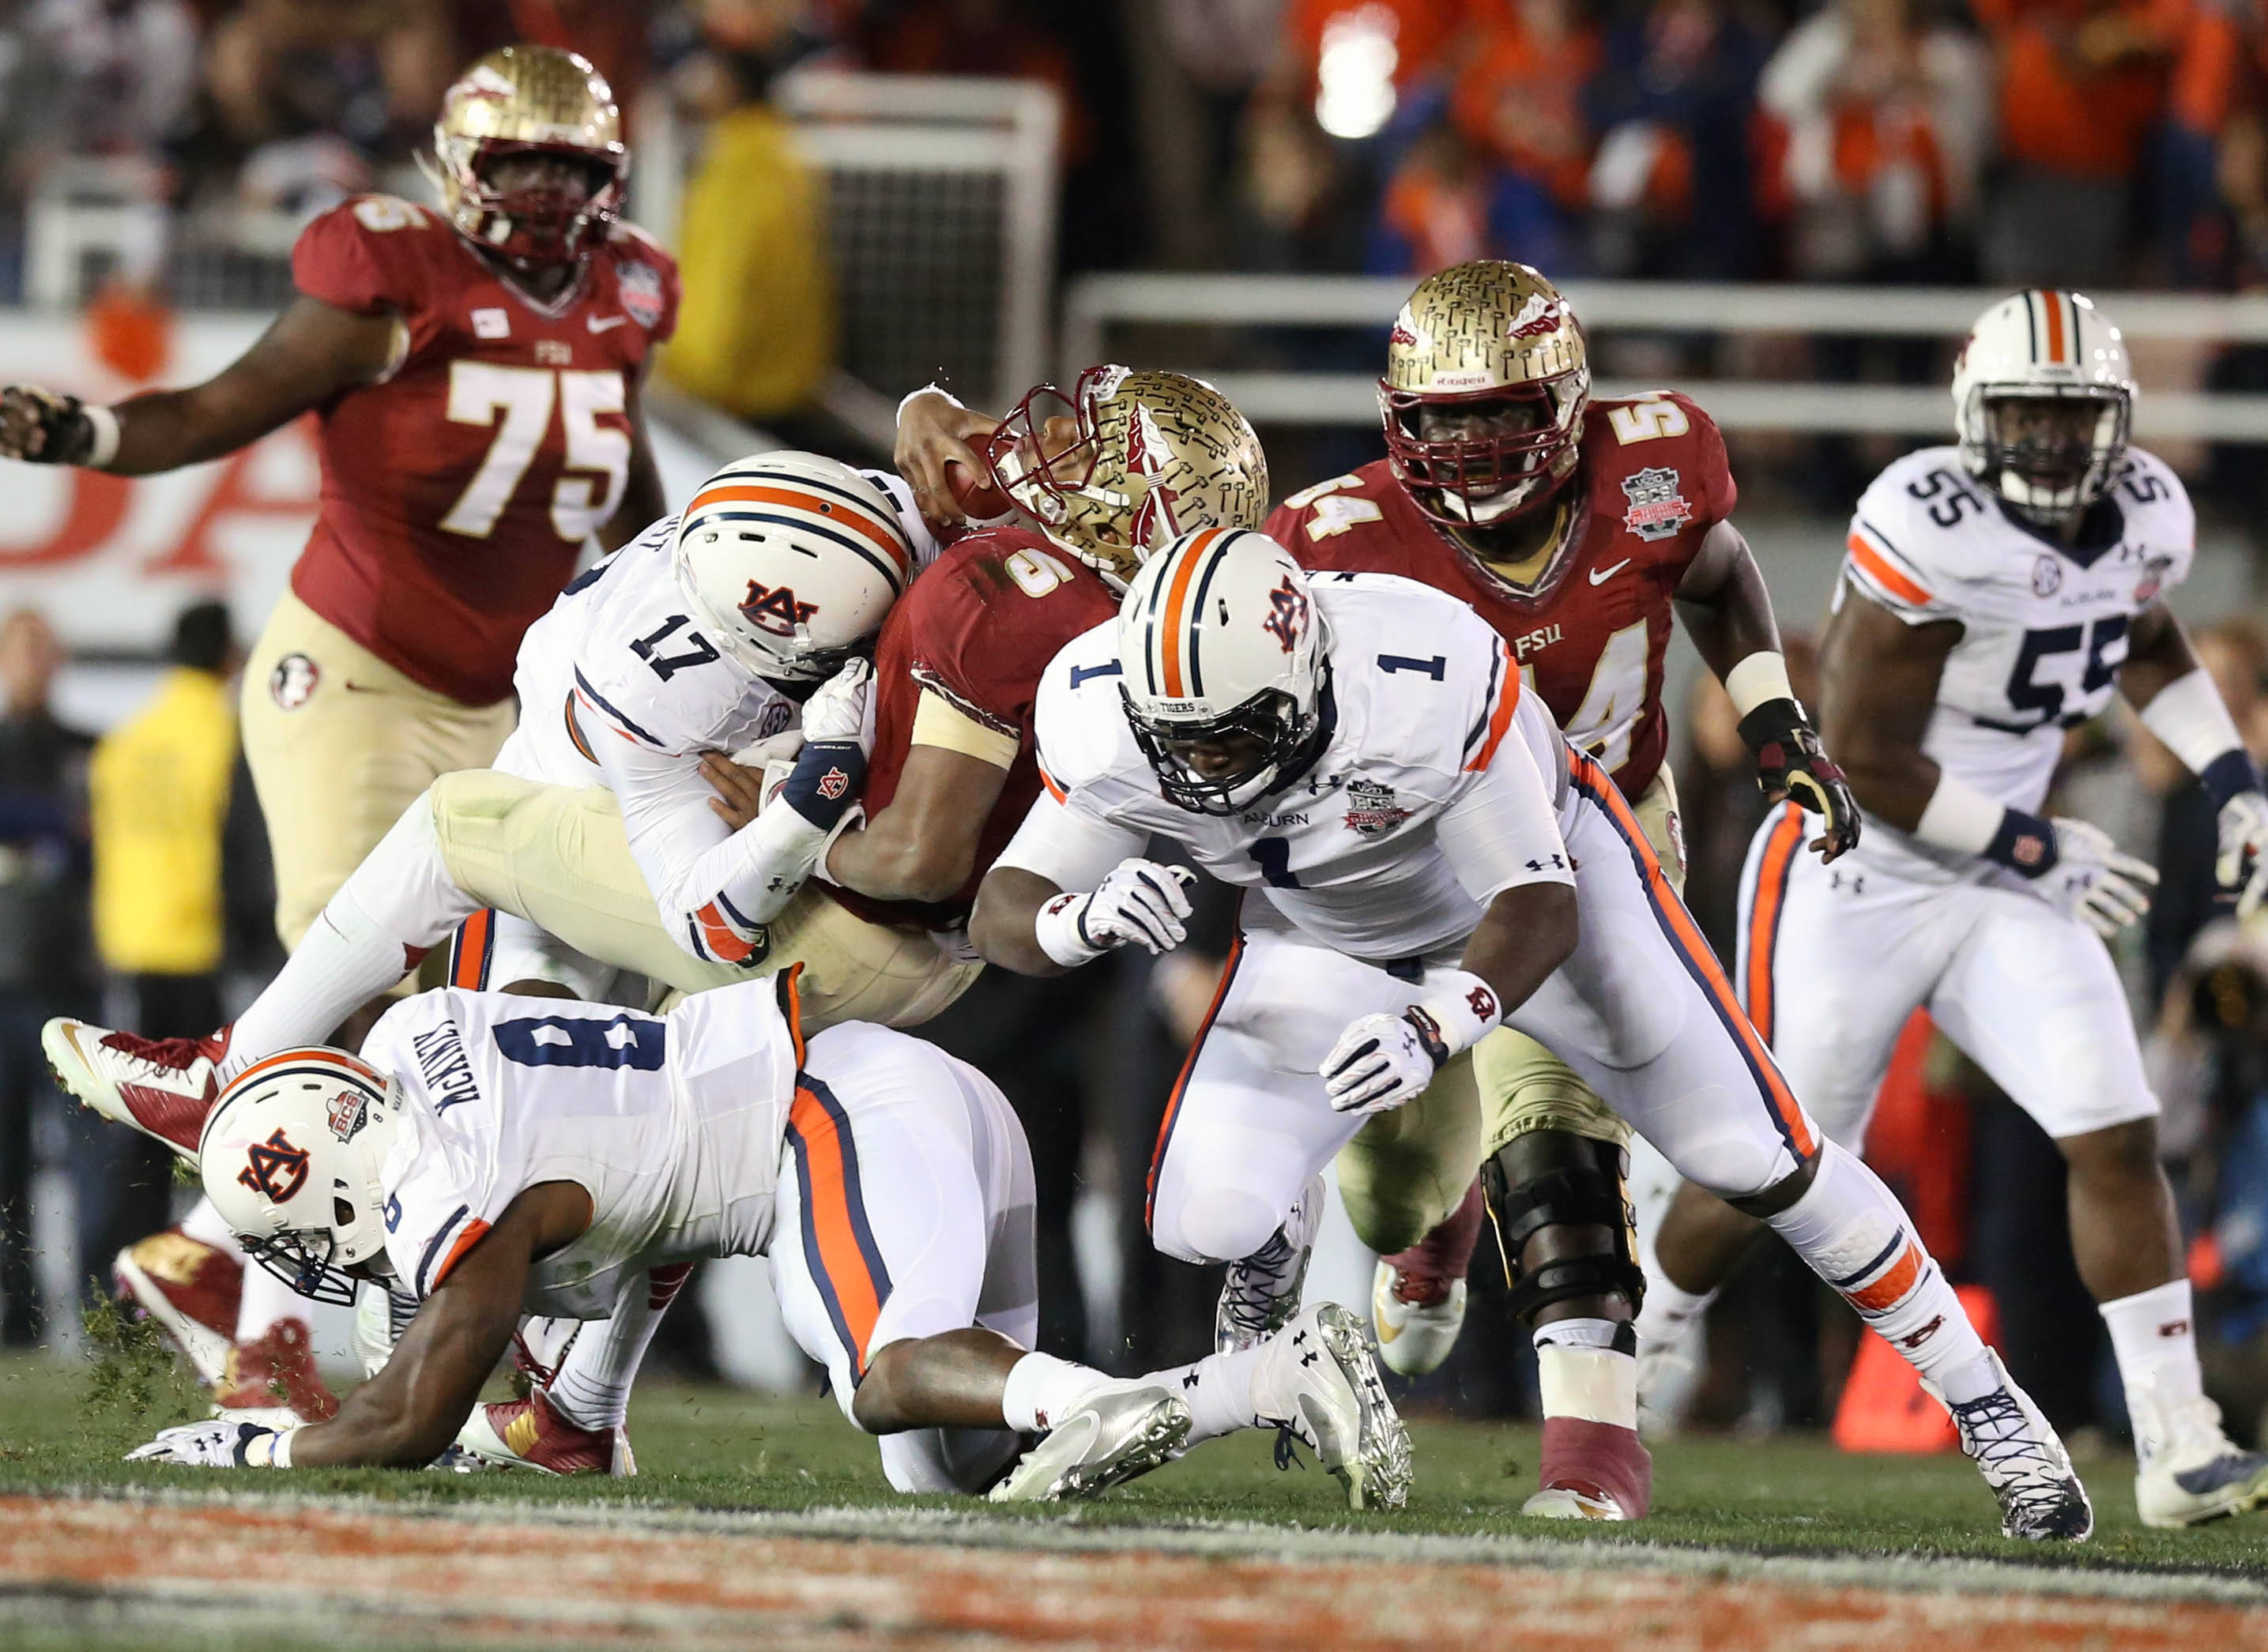 Jan 6, 2014; Pasadena, CA, USA; Florida State Seminoles quarterback Jameis Winston (5) is tackled by Auburn Tigers linebacker Kris Frost (17), Cassanova McKinzy (8) and Montravius Adams (1) during the first half of the 2014 BCS National Championship game at the Rose Bowl.  Mandatory Credit: Matthew Emmons-USA TODAY Sports